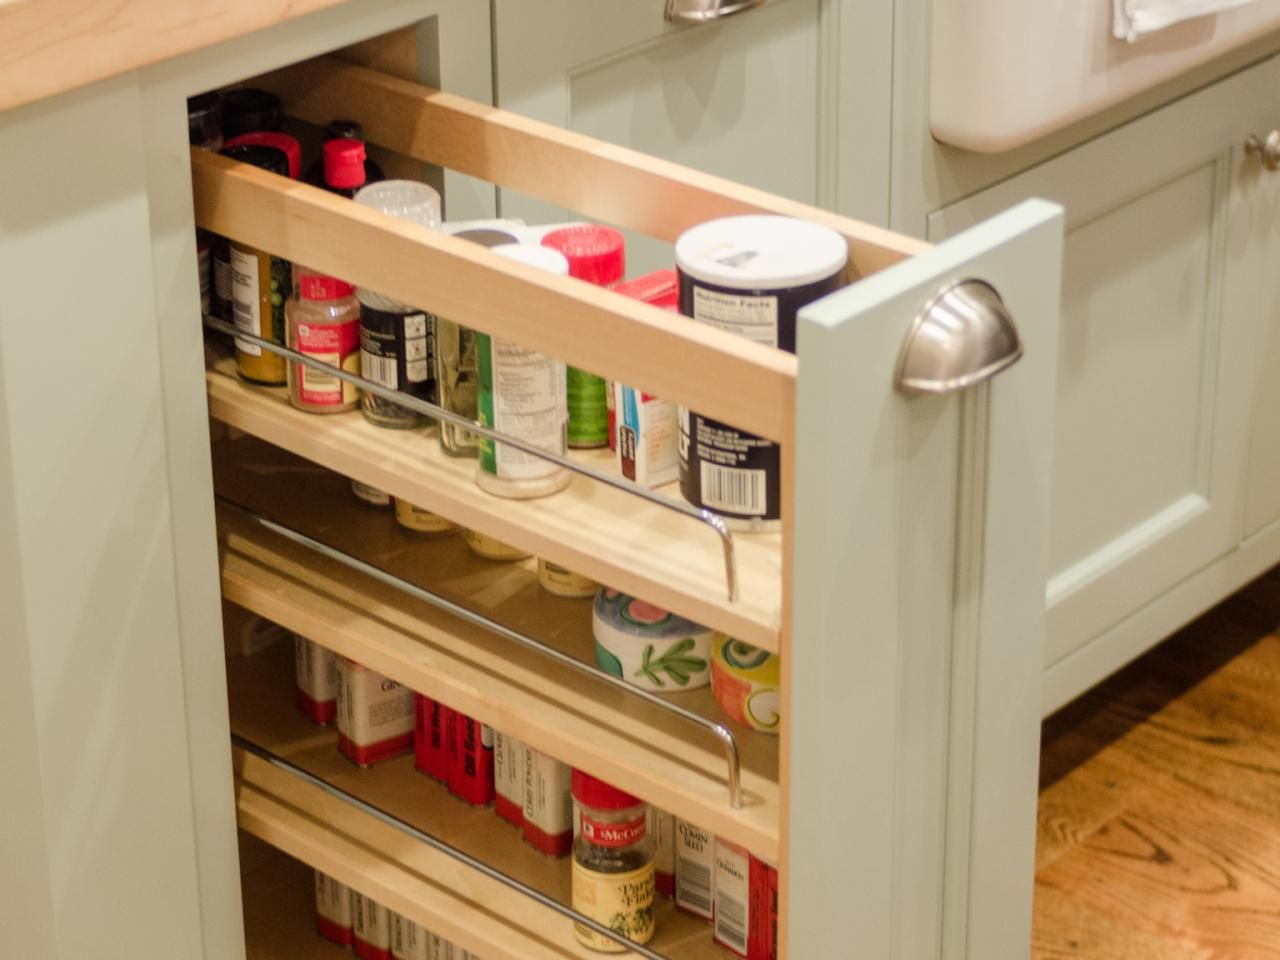 Spice Racks For Kitchen Cabinets Pictures Options Tips & Ideas Unique Pull Out Kitchen Cabinet Design Decoration